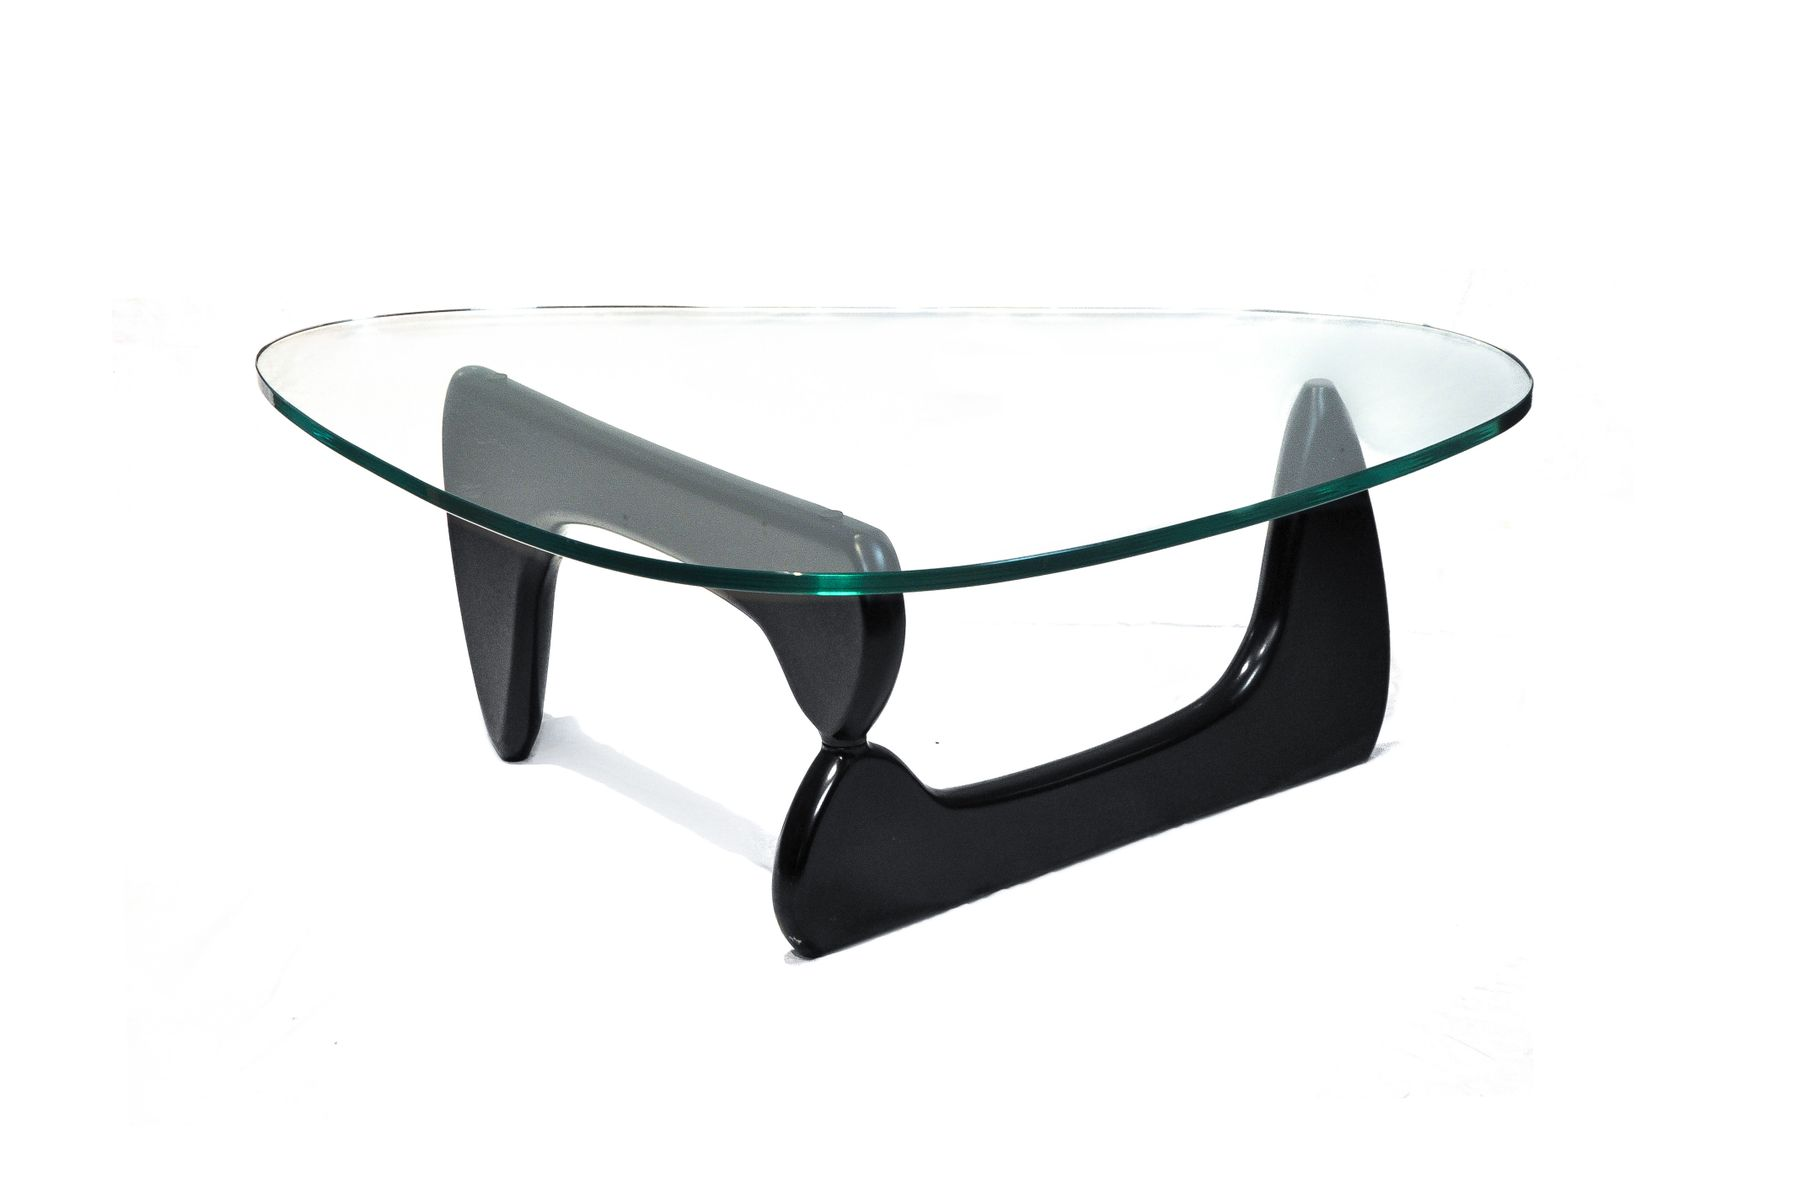 Vintage in 50 coffee table by isamu noguchi for herman miller for sale at pamono Herman miller noguchi coffee table